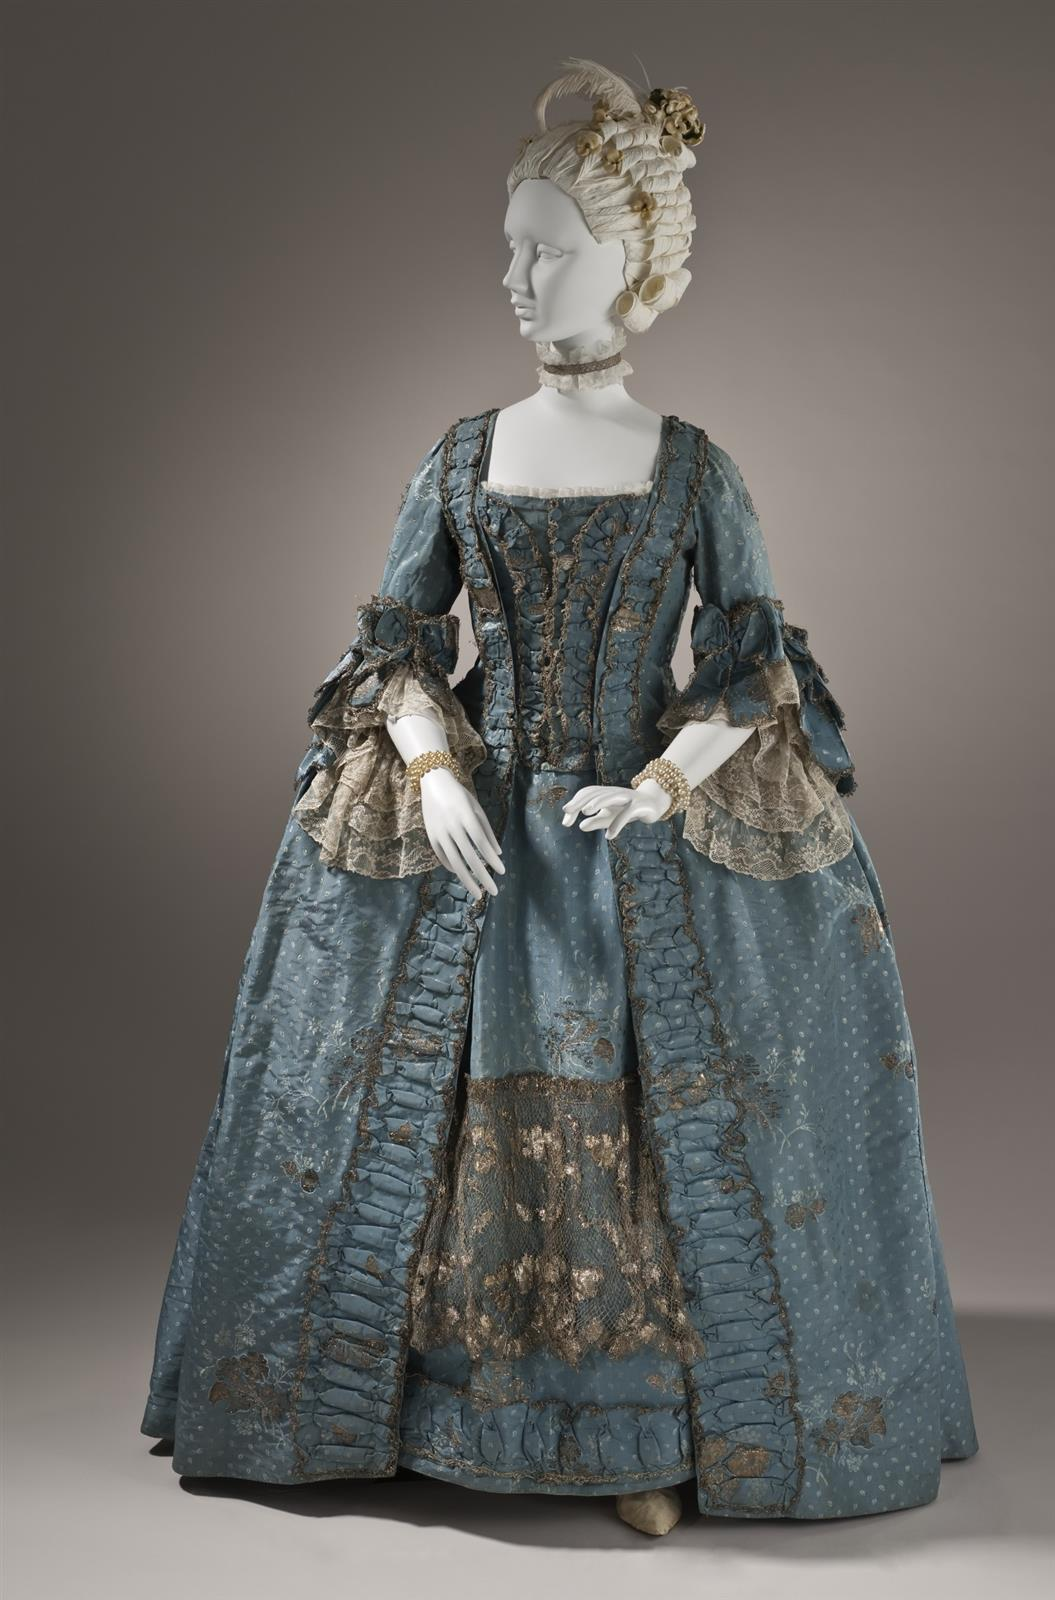 1765. Woman's Dress and Petticoat (Robe à la française). Silk plain weave (faille) with silk and metallic-thread supplementary-weft patterning, and metallic lace. LACMA